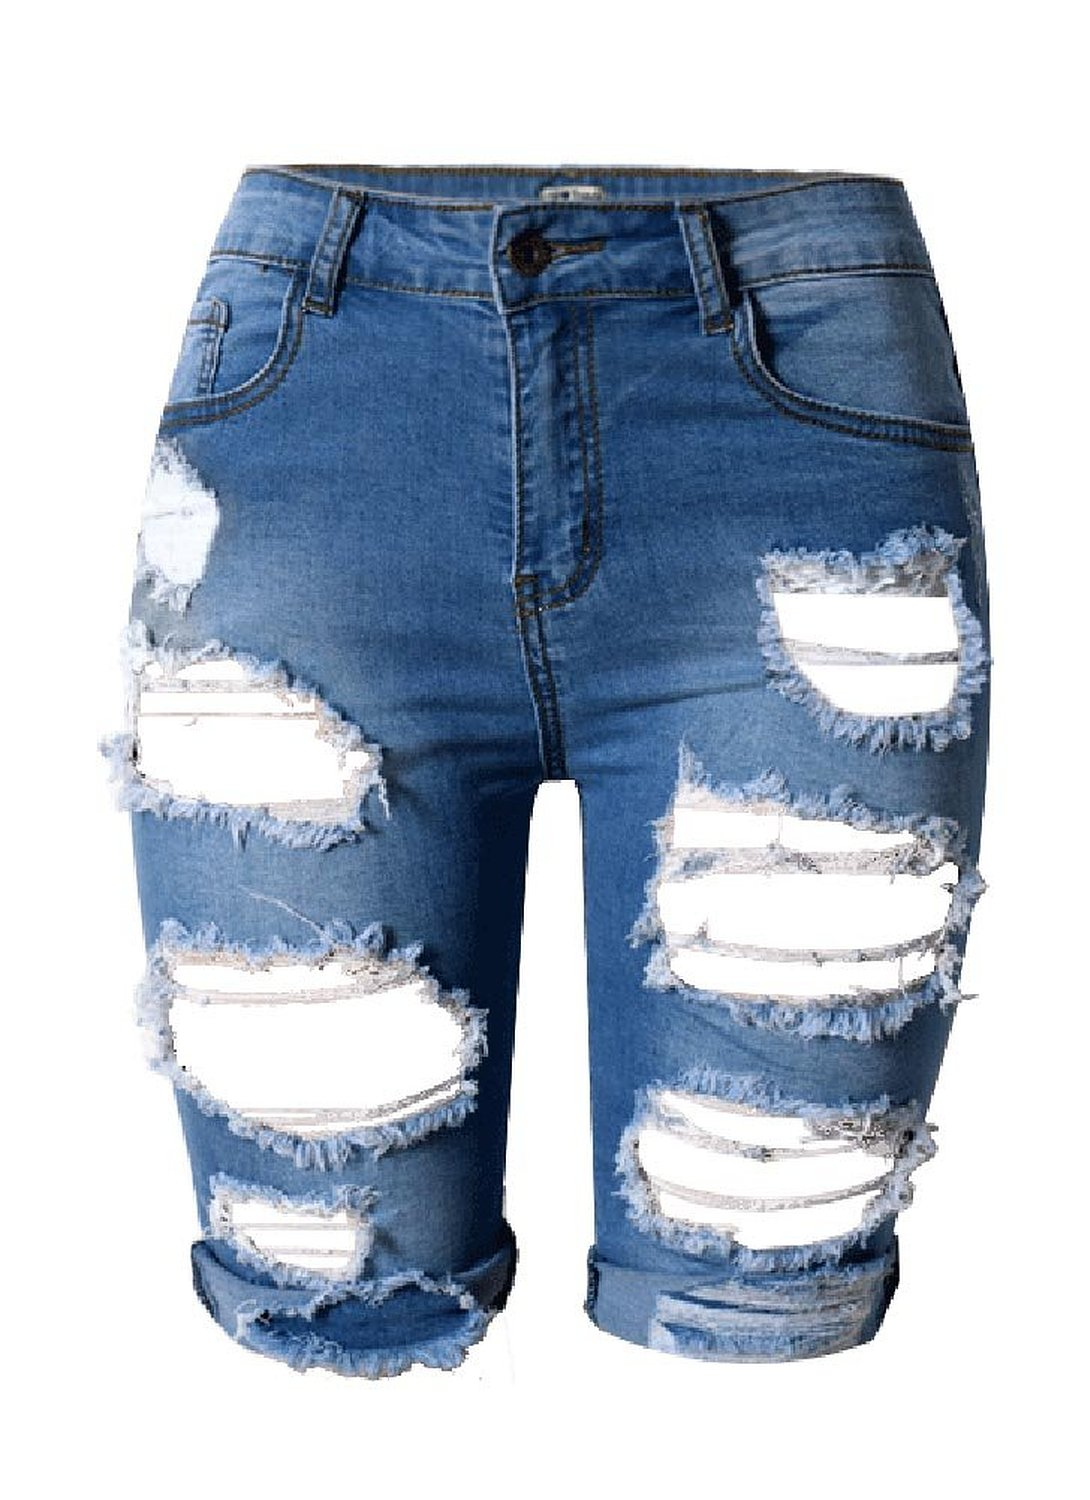 Ybenlow Womens High Waist Ripped Hole Washed Distressed Short Jeans at Amazon Women's Jeans store